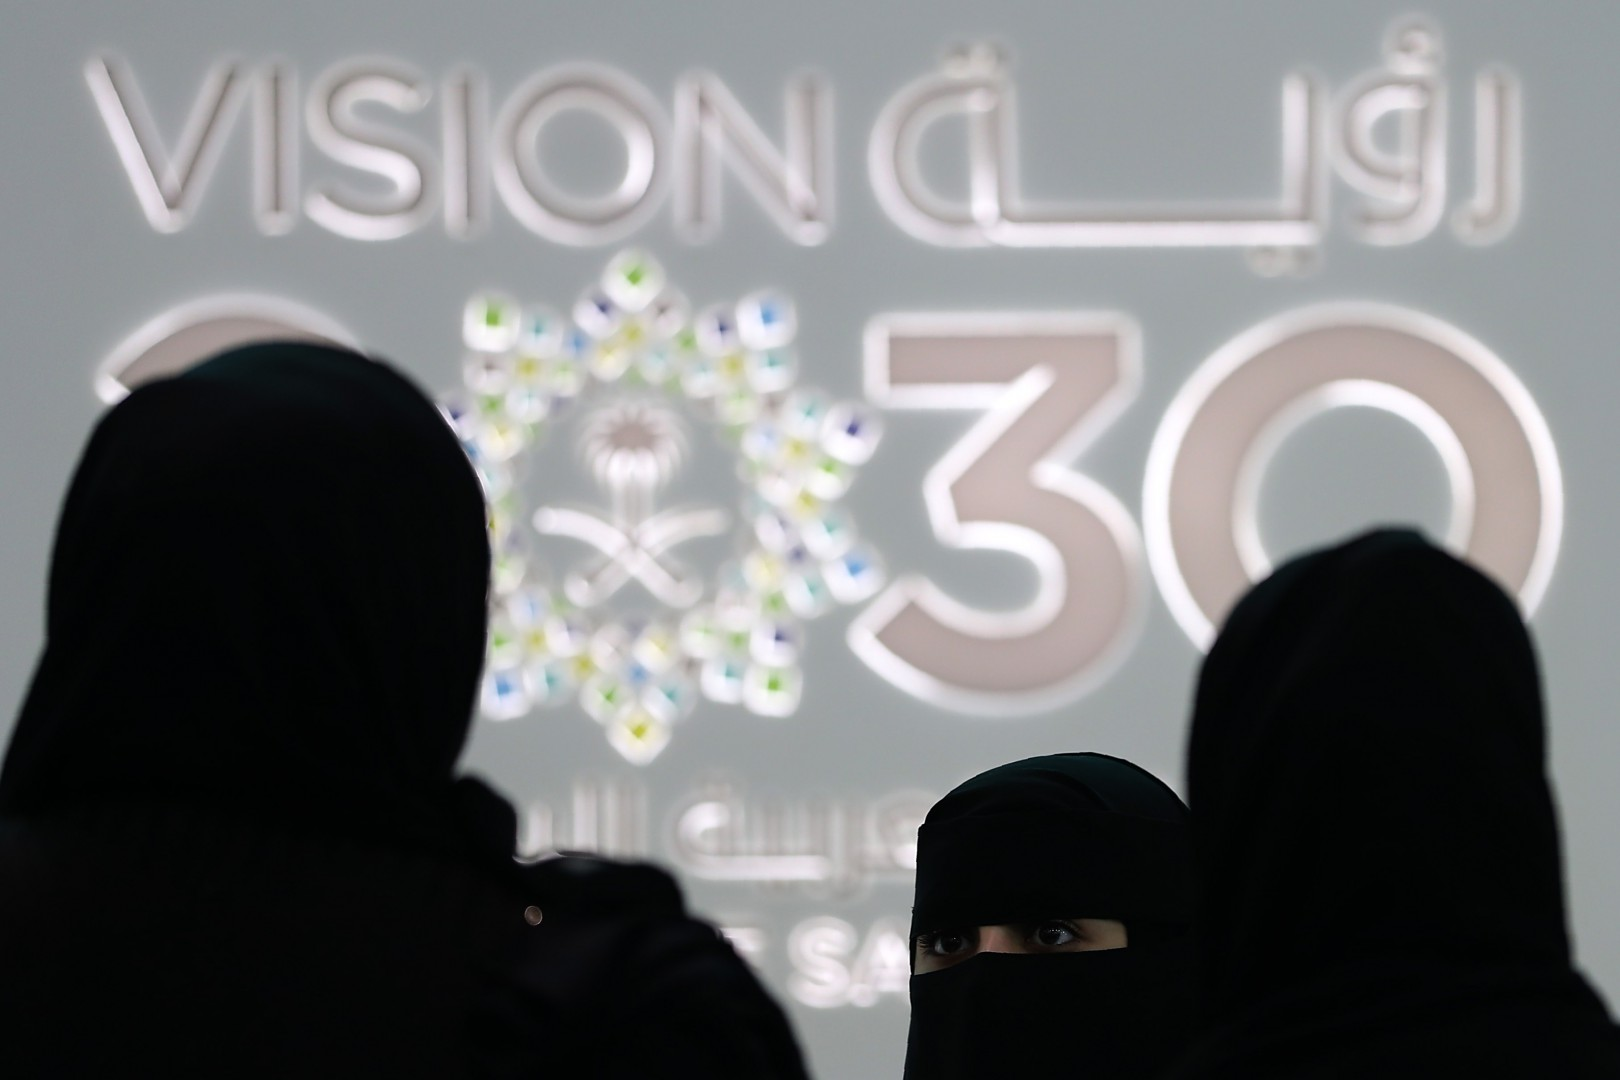 """Saudi women stand next to the Saudi pavilion (vision 2030) at the Gitex 2018 exhibition at the Dubai World Trade Center in Dubai on October 16, 2018. - Gitex (""""Gulf Information Technology Exhibition"""") is a consumer computer and electronics trade show. (Photo by KARIM SAHIB / AFP)"""